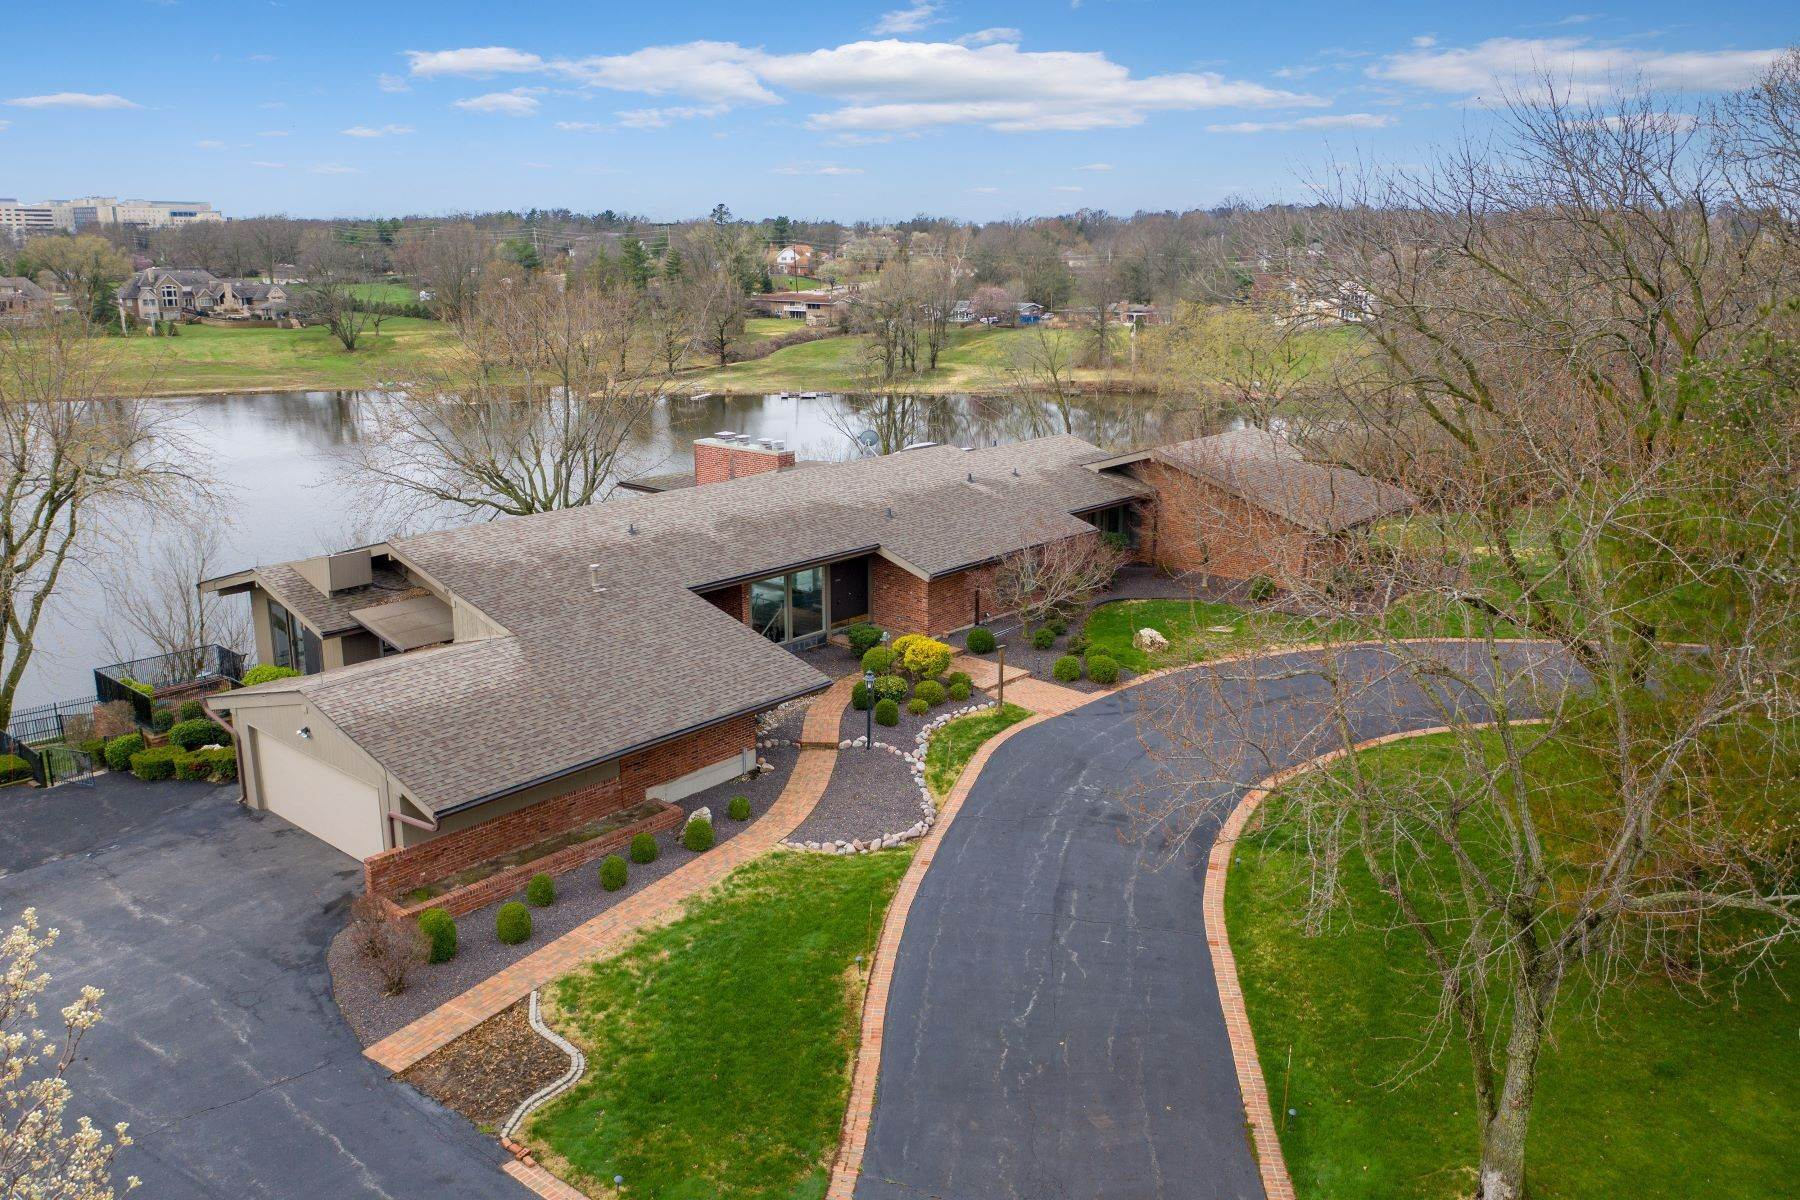 Property for Sale at Sensational Mid-Century Lakefront Home 11622 Ladue Road Creve Coeur, Missouri 63141 United States